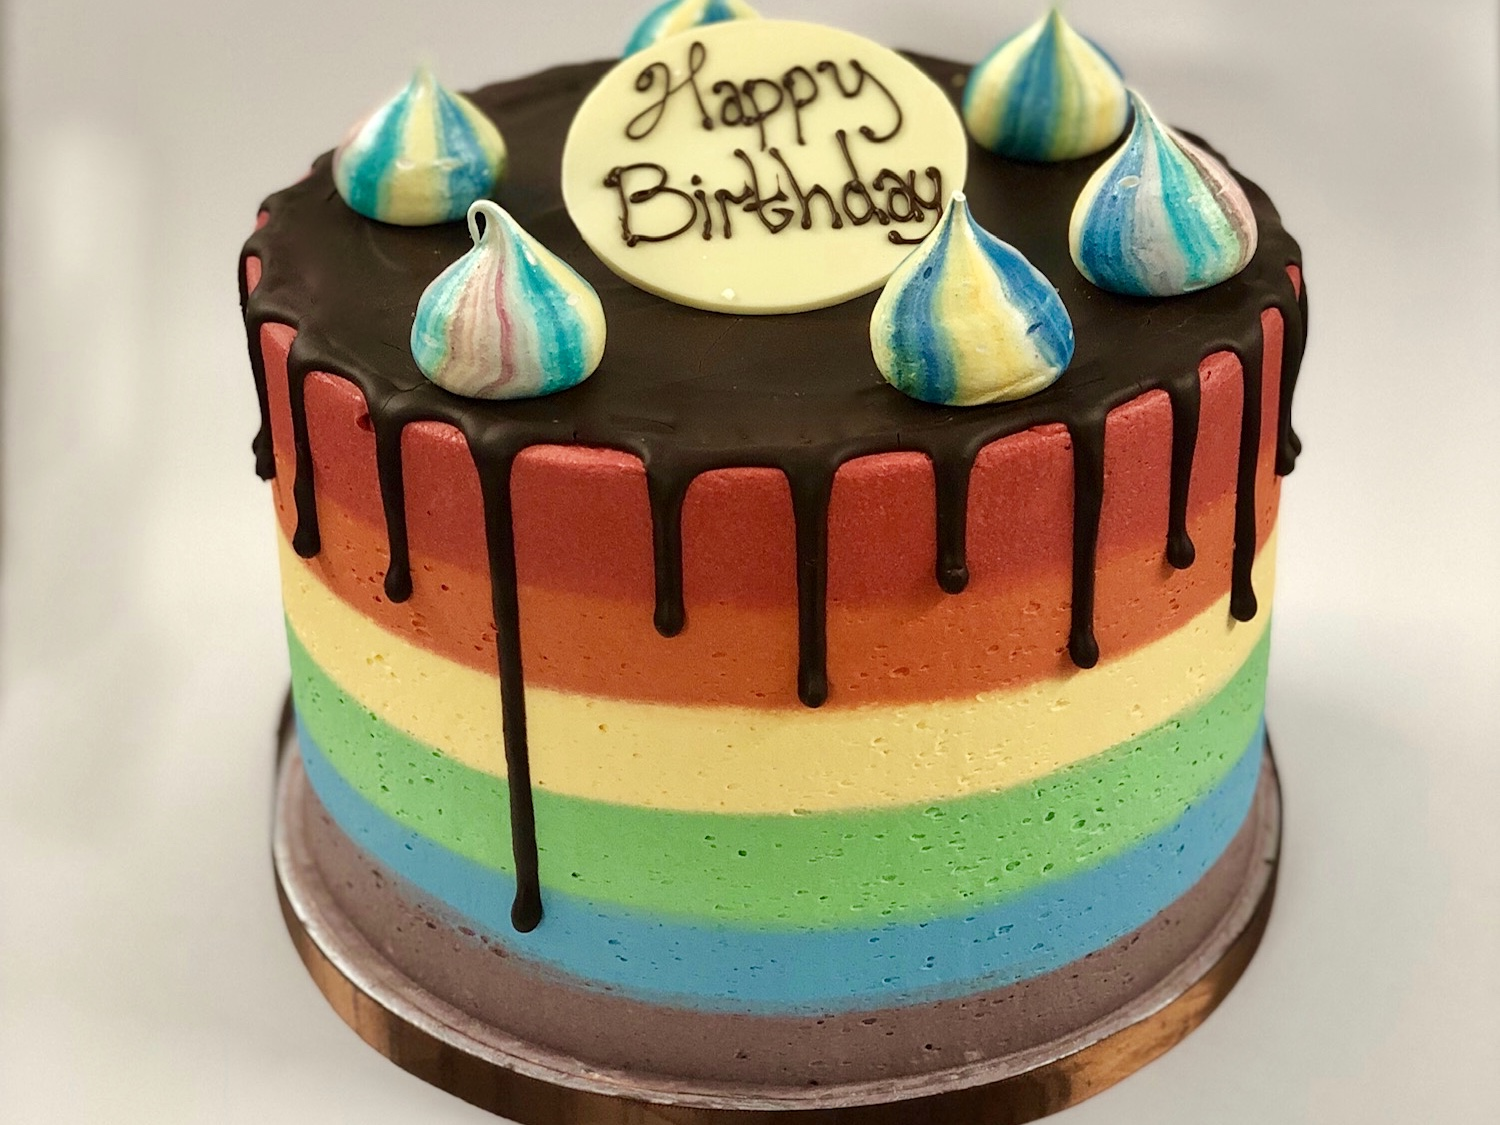 Celebration Cakes - Rainbow Funfetti Cake